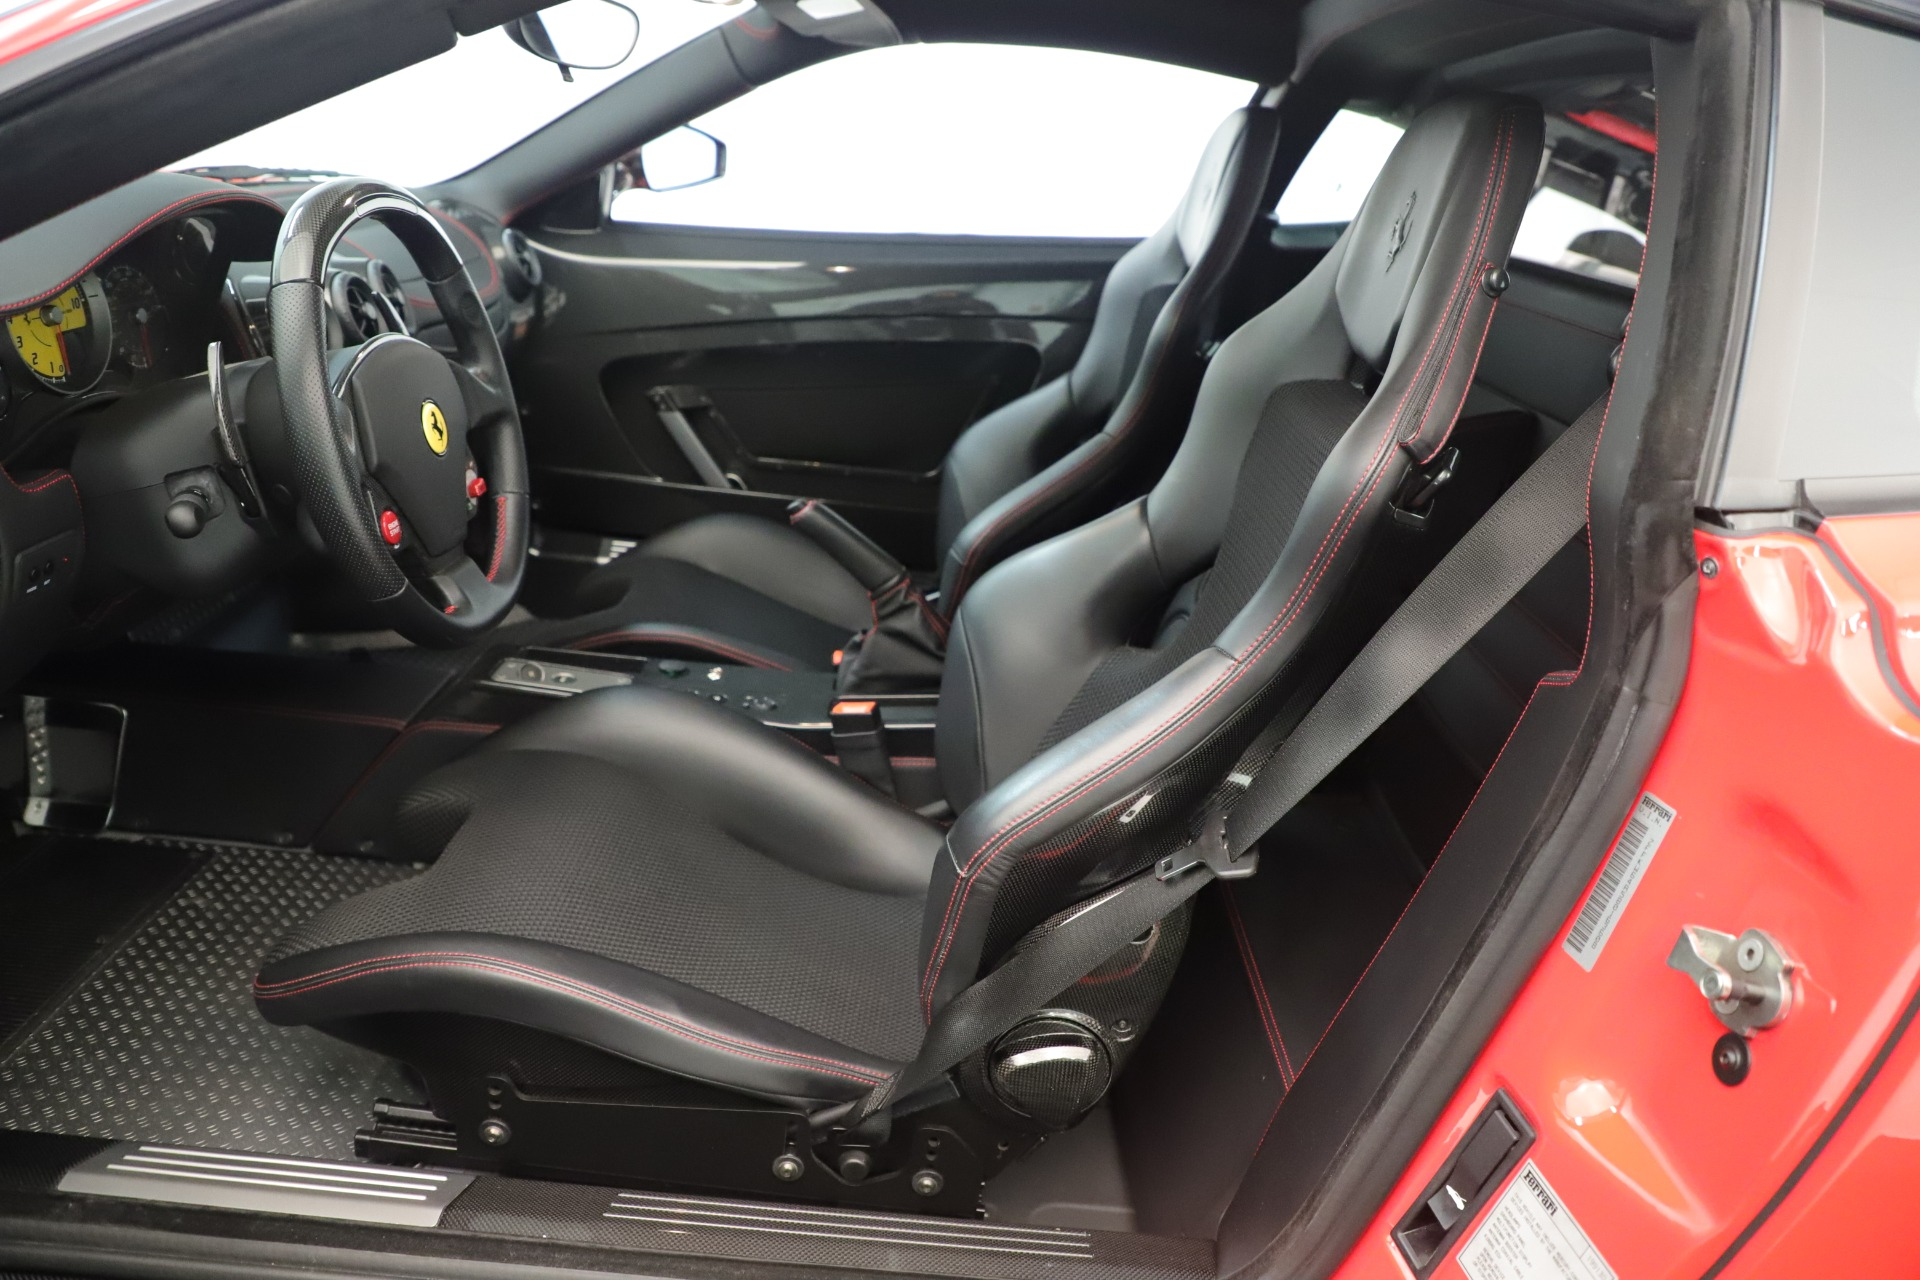 Used 2008 Ferrari F430 Scuderia For Sale In Greenwich, CT 3381_p15